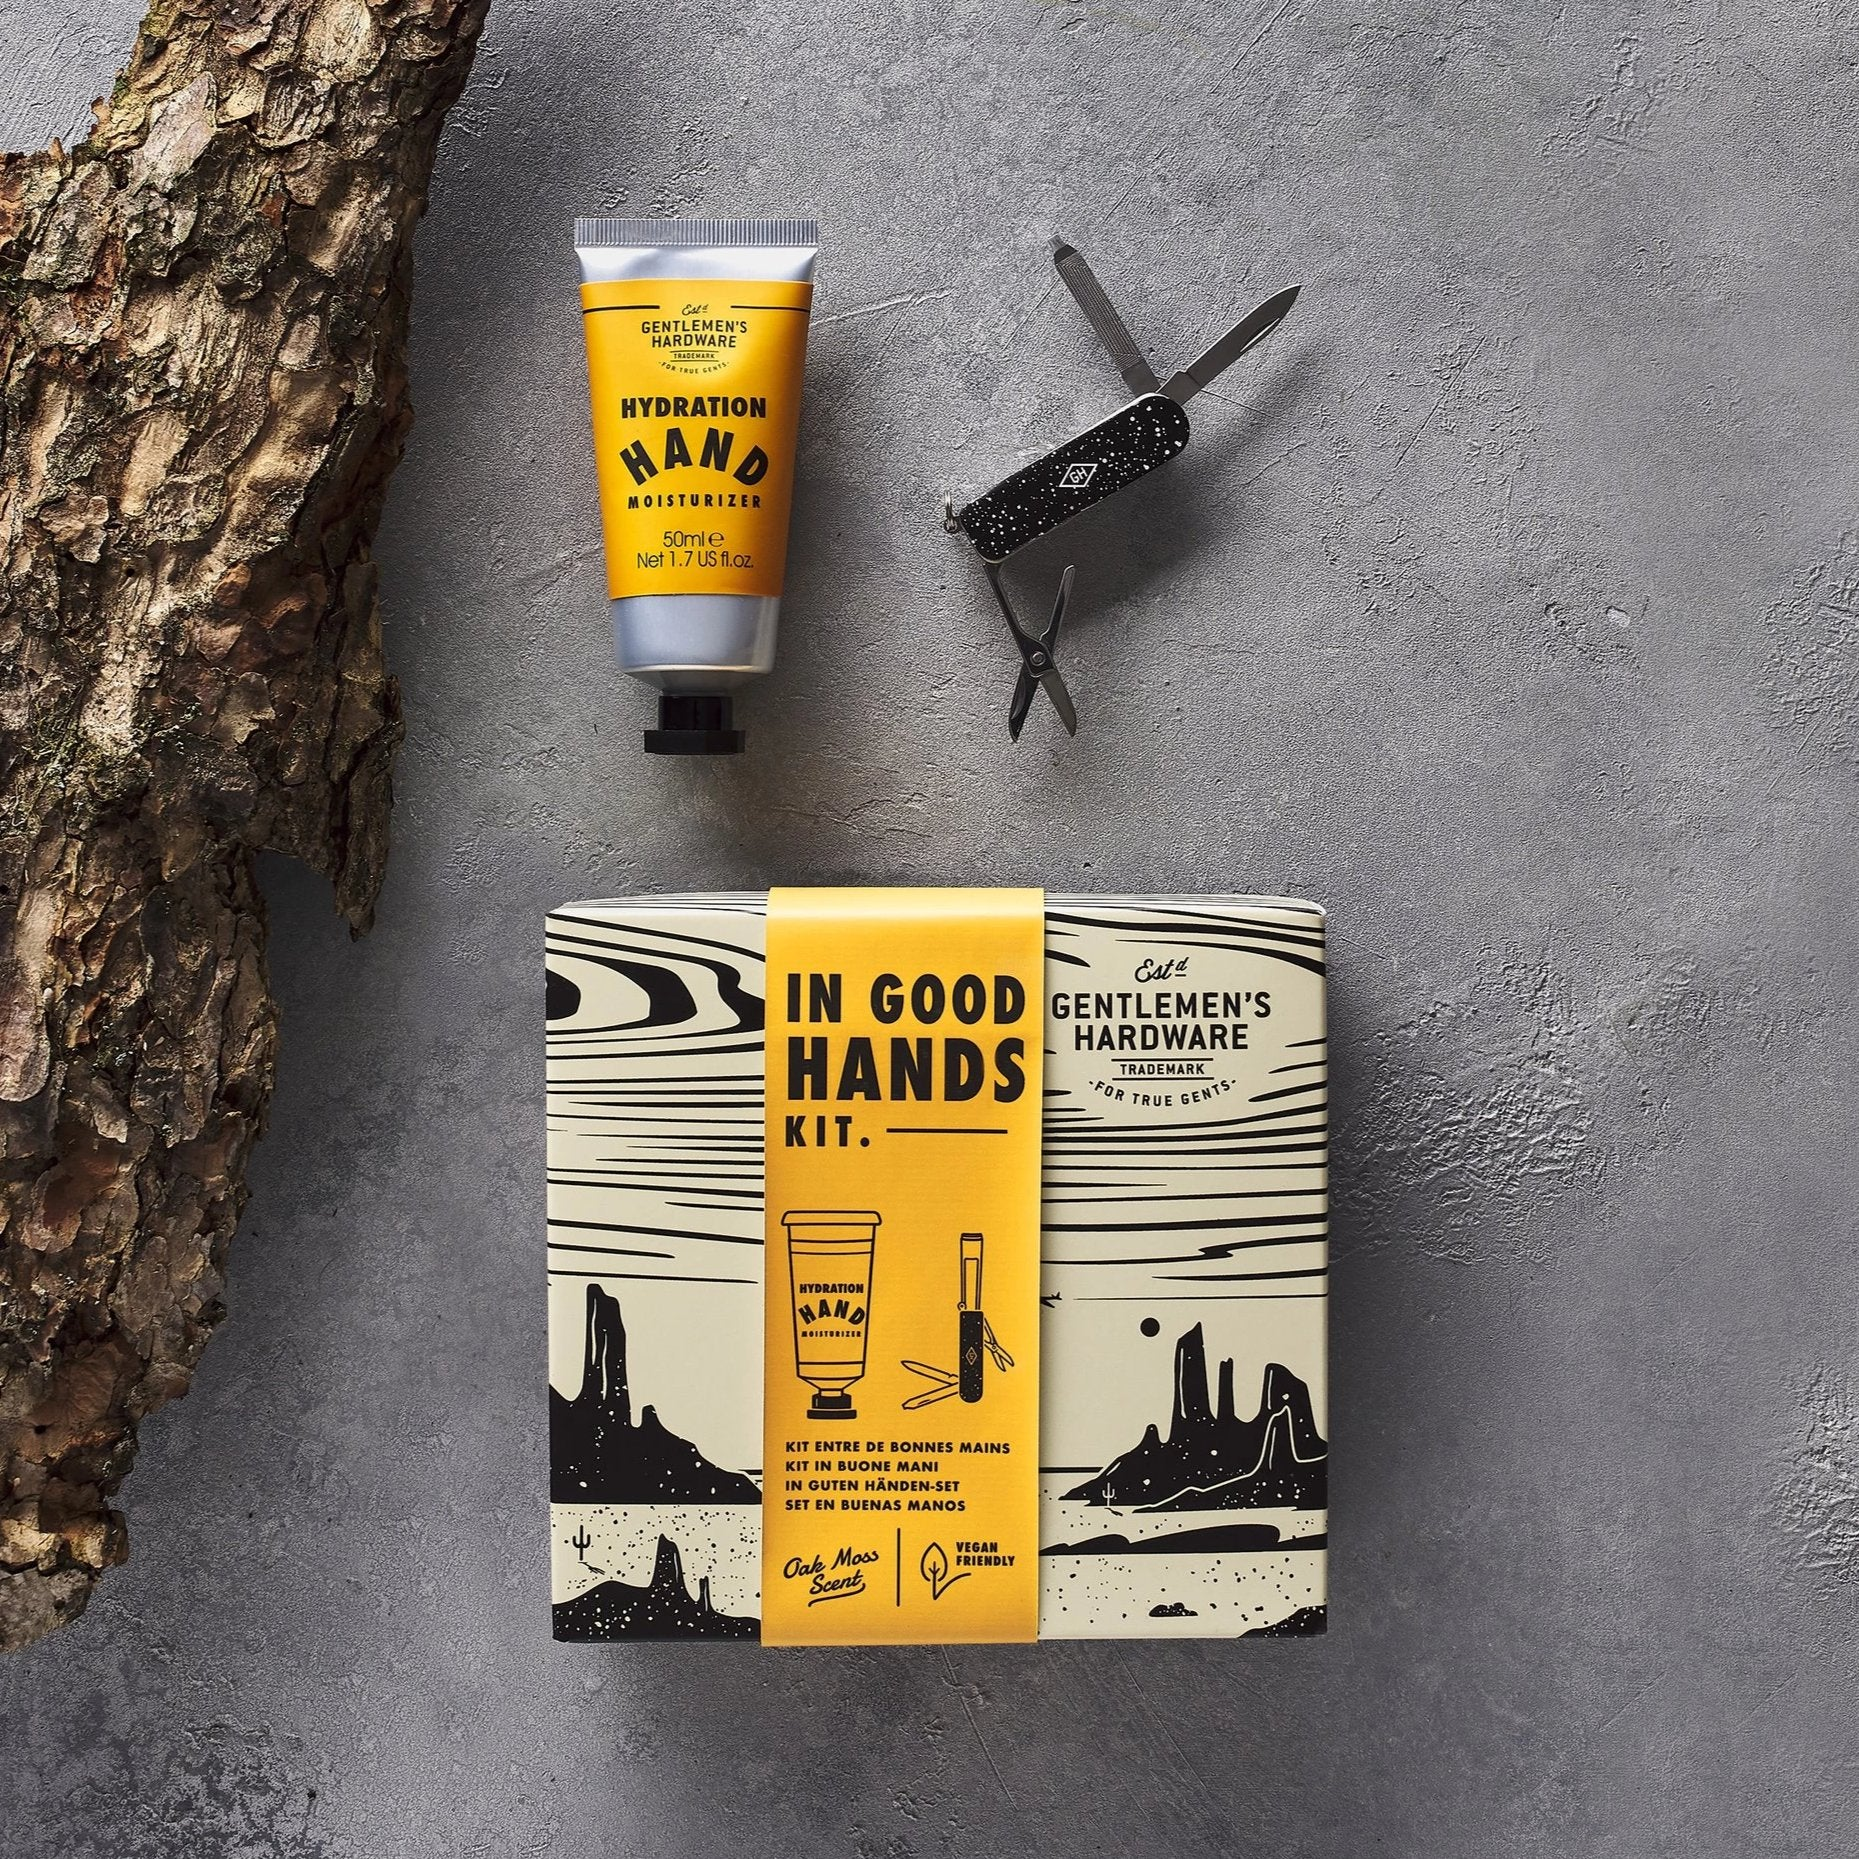 Gents Hardware - In Good Hands Kit